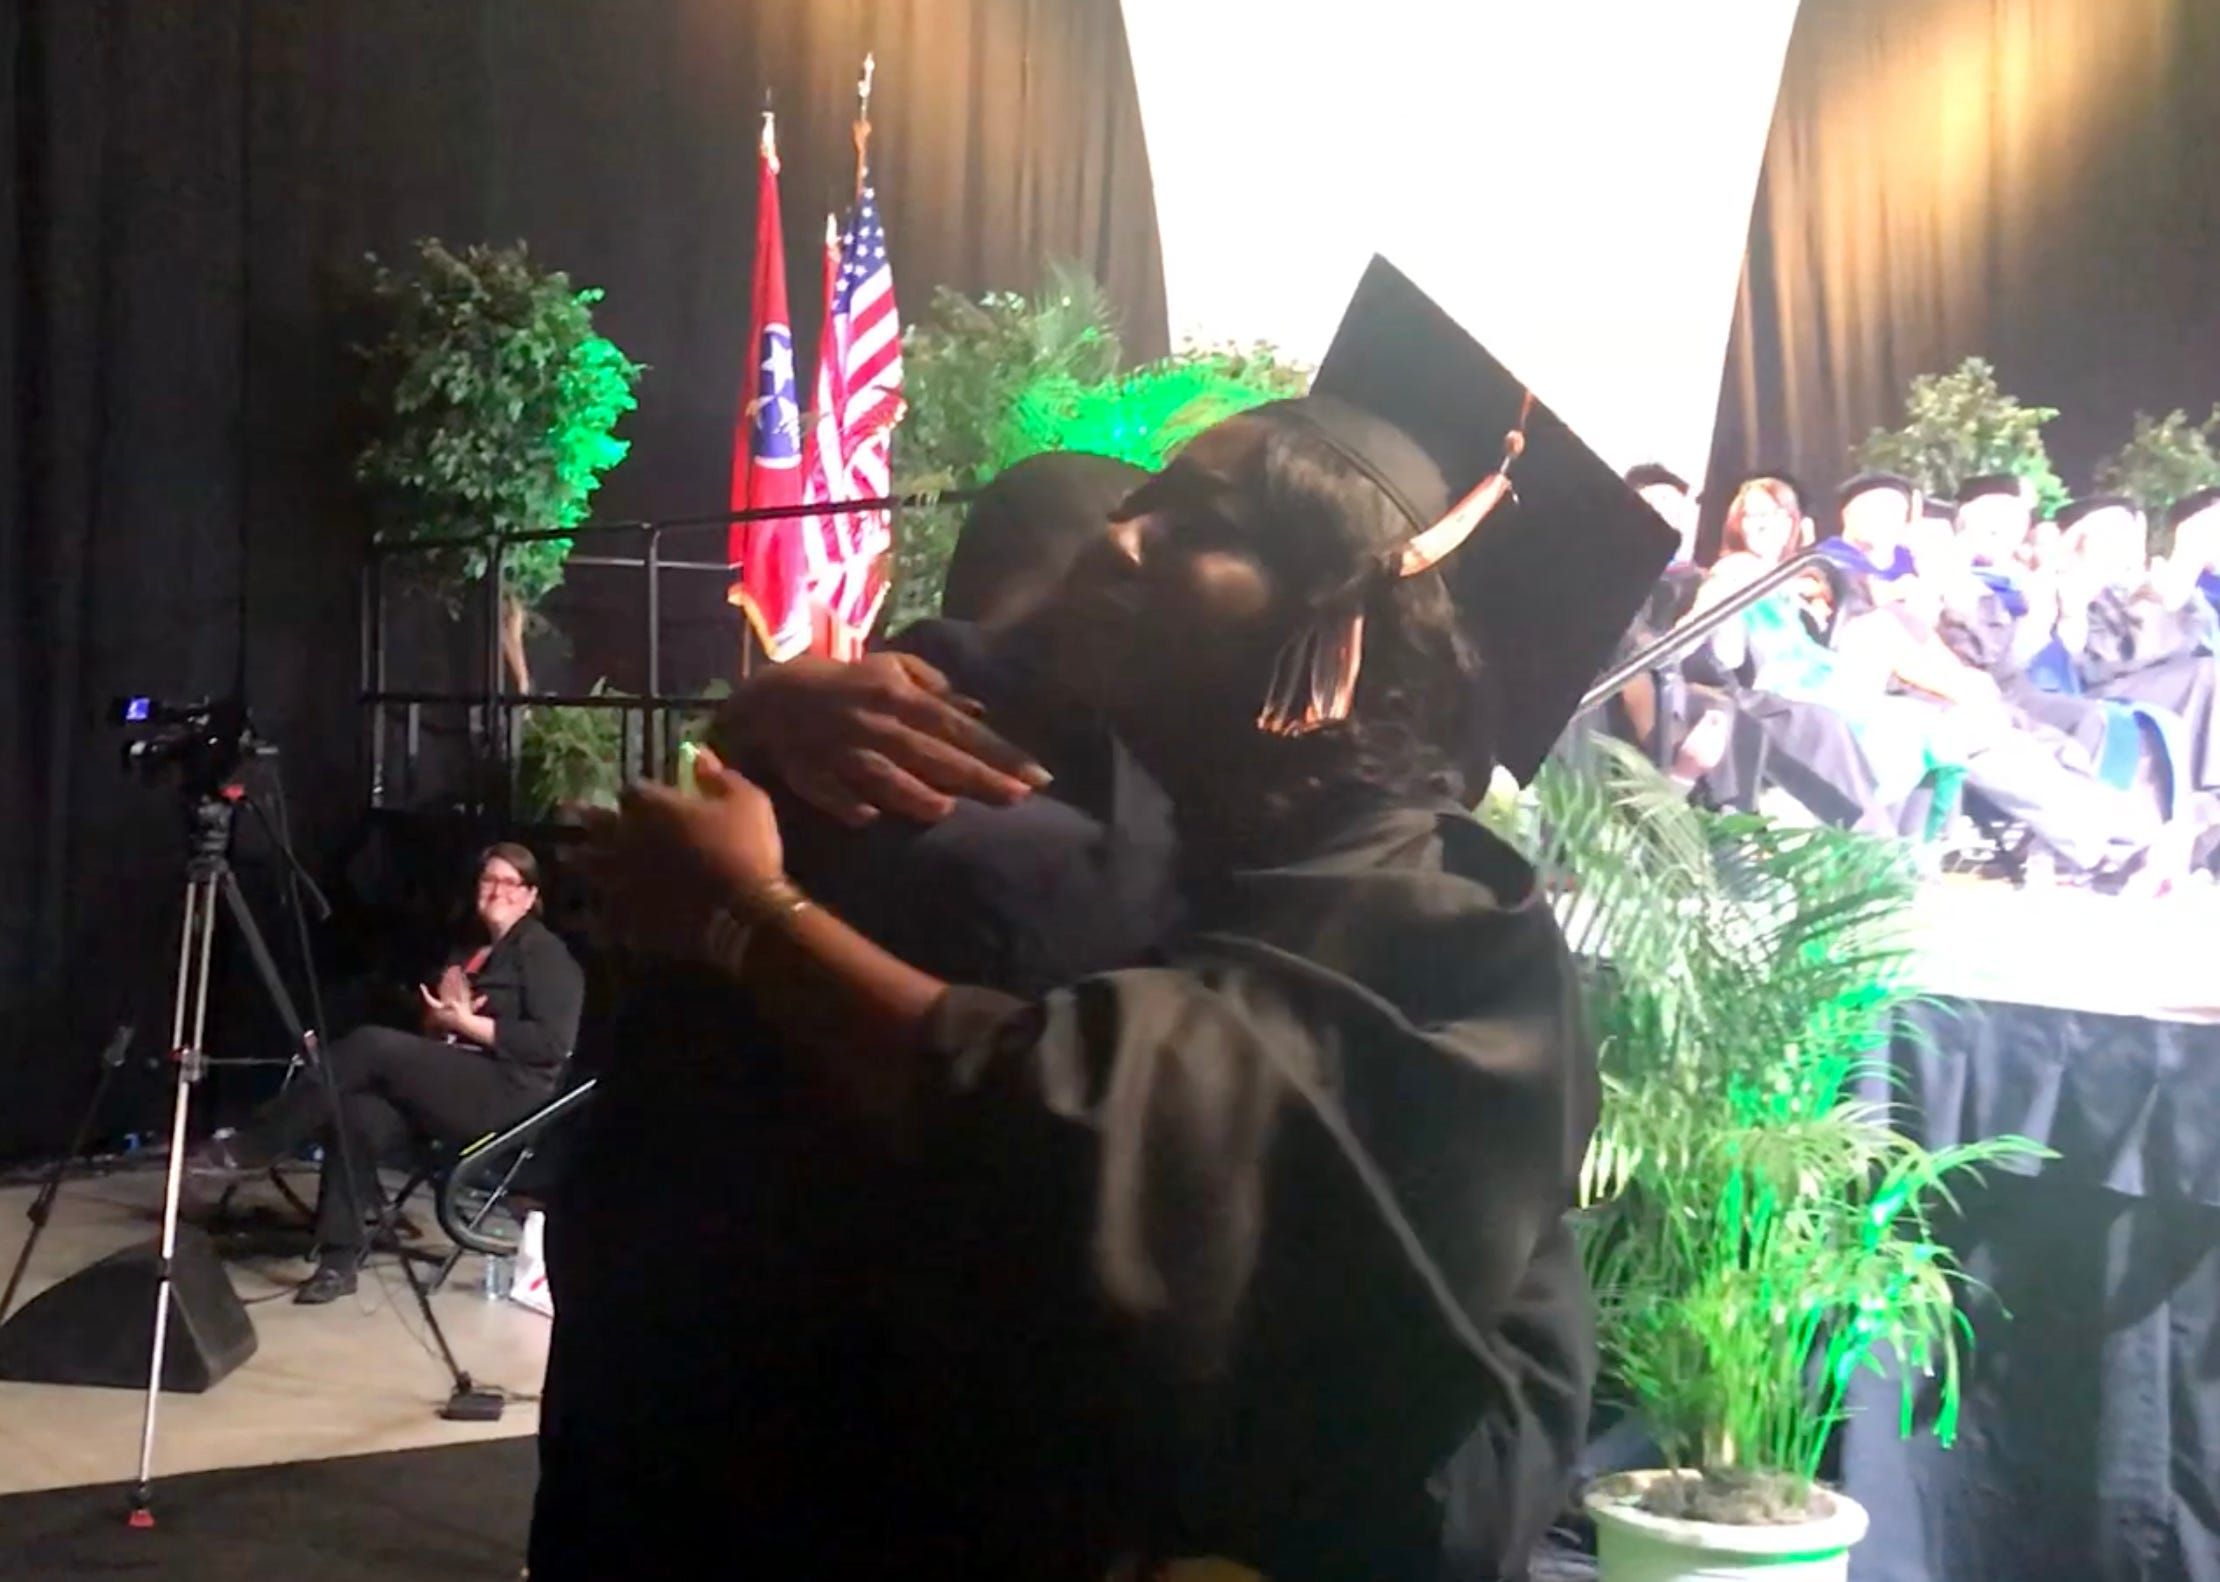 Watch as Air Force brother surprises sister at UT college graduation